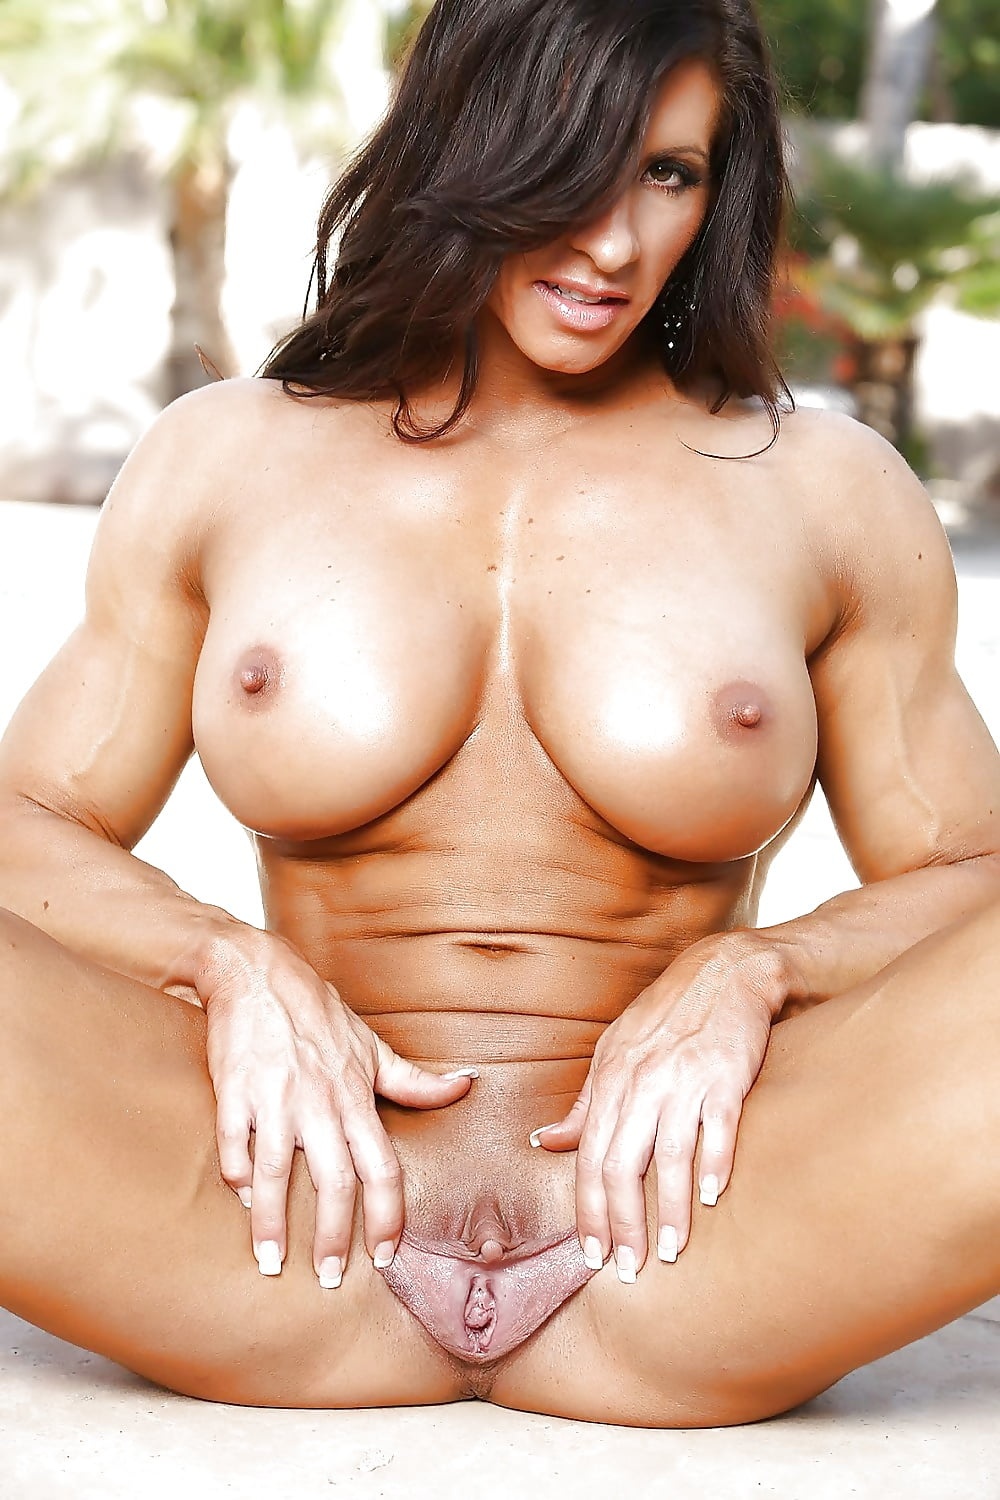 Muscular women pussies, sex xxx indea only in hd